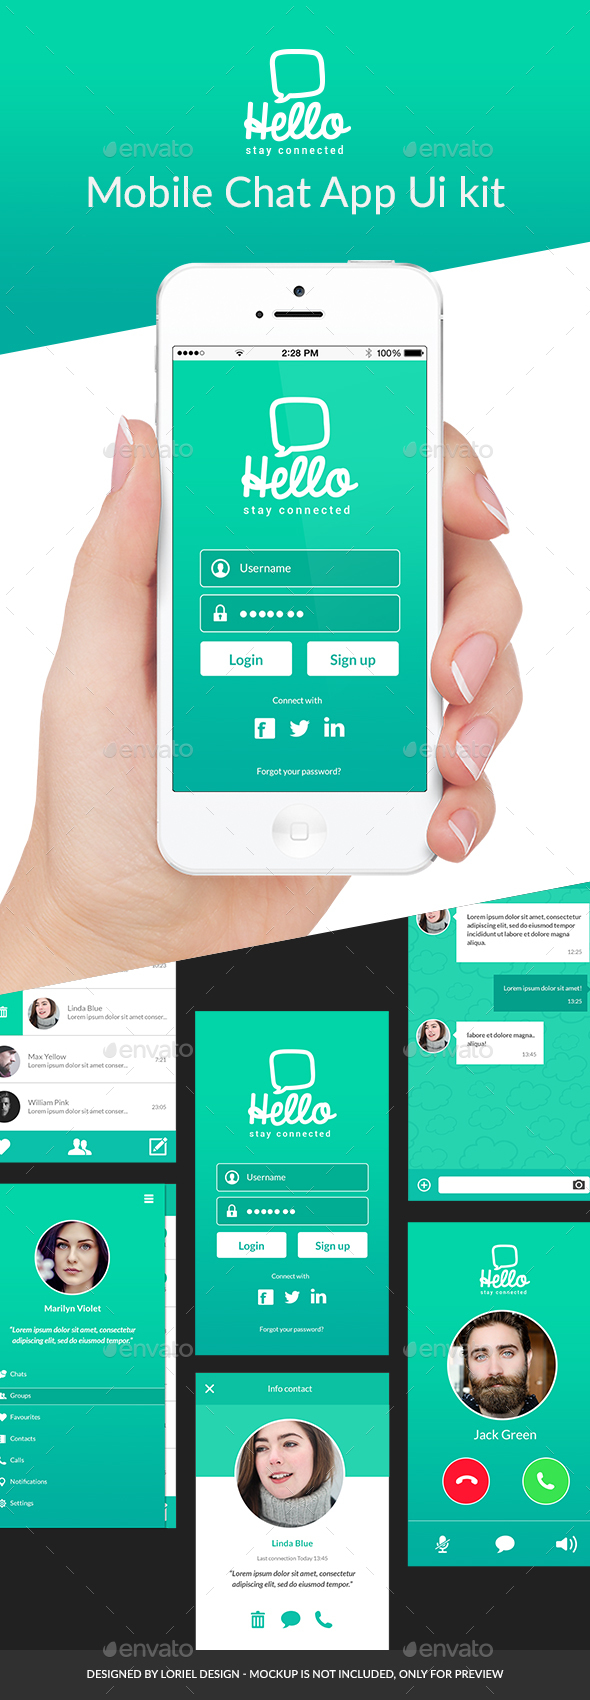 Hello - Mobile Chat App Ui kit (User Interfaces)